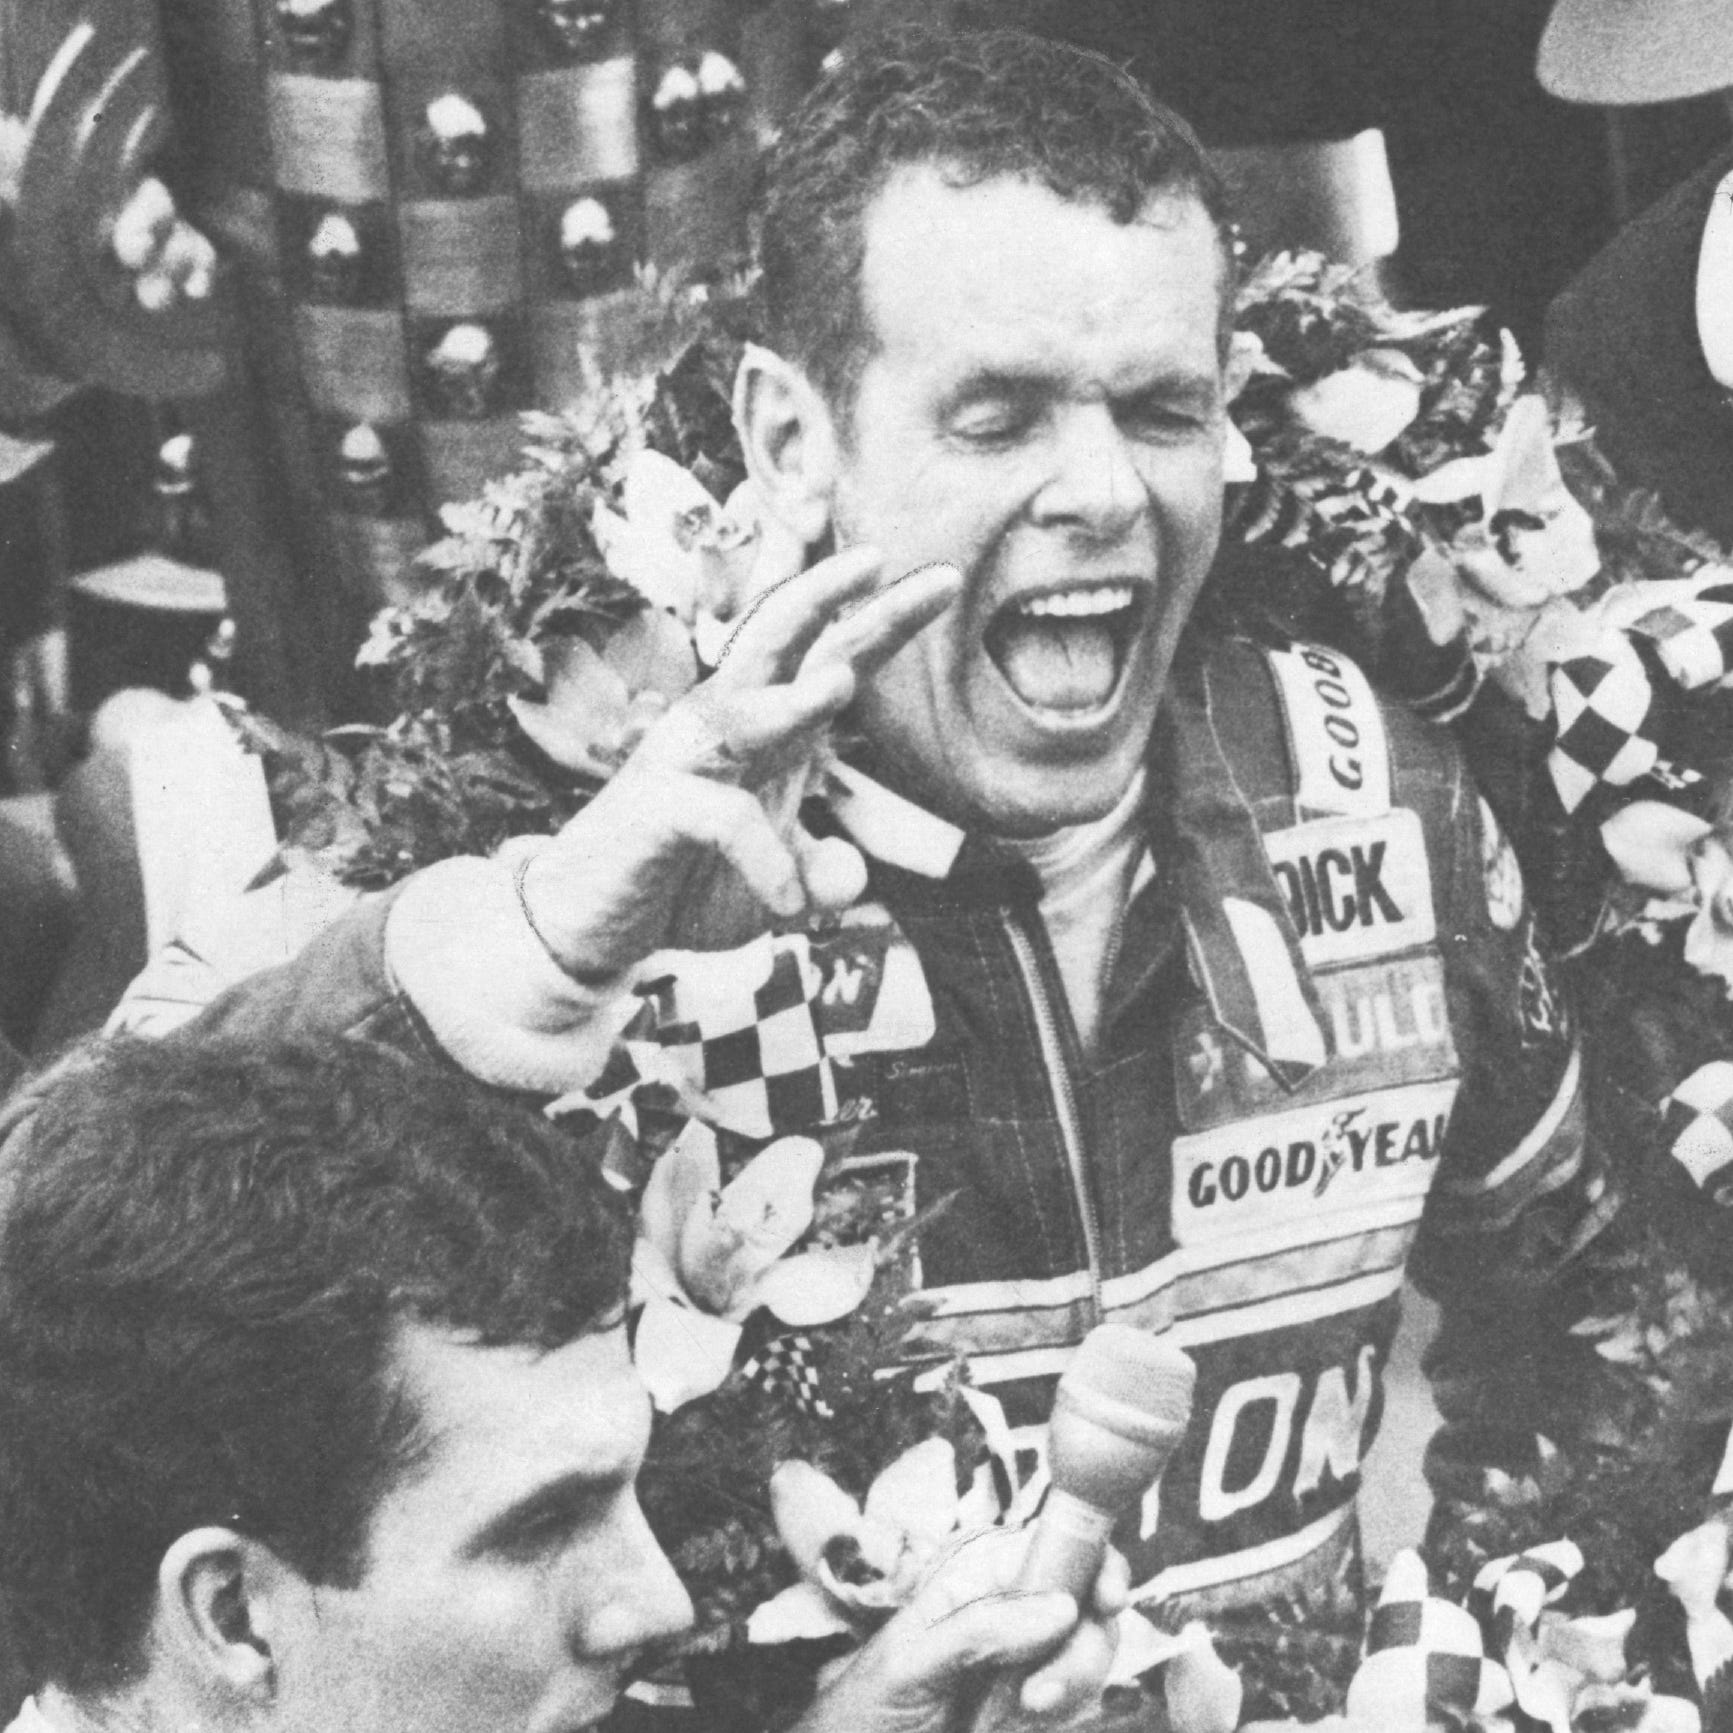 Indy 500's most controversial finish: It ruined Mario Andretti, Bobby Unser friendship forever